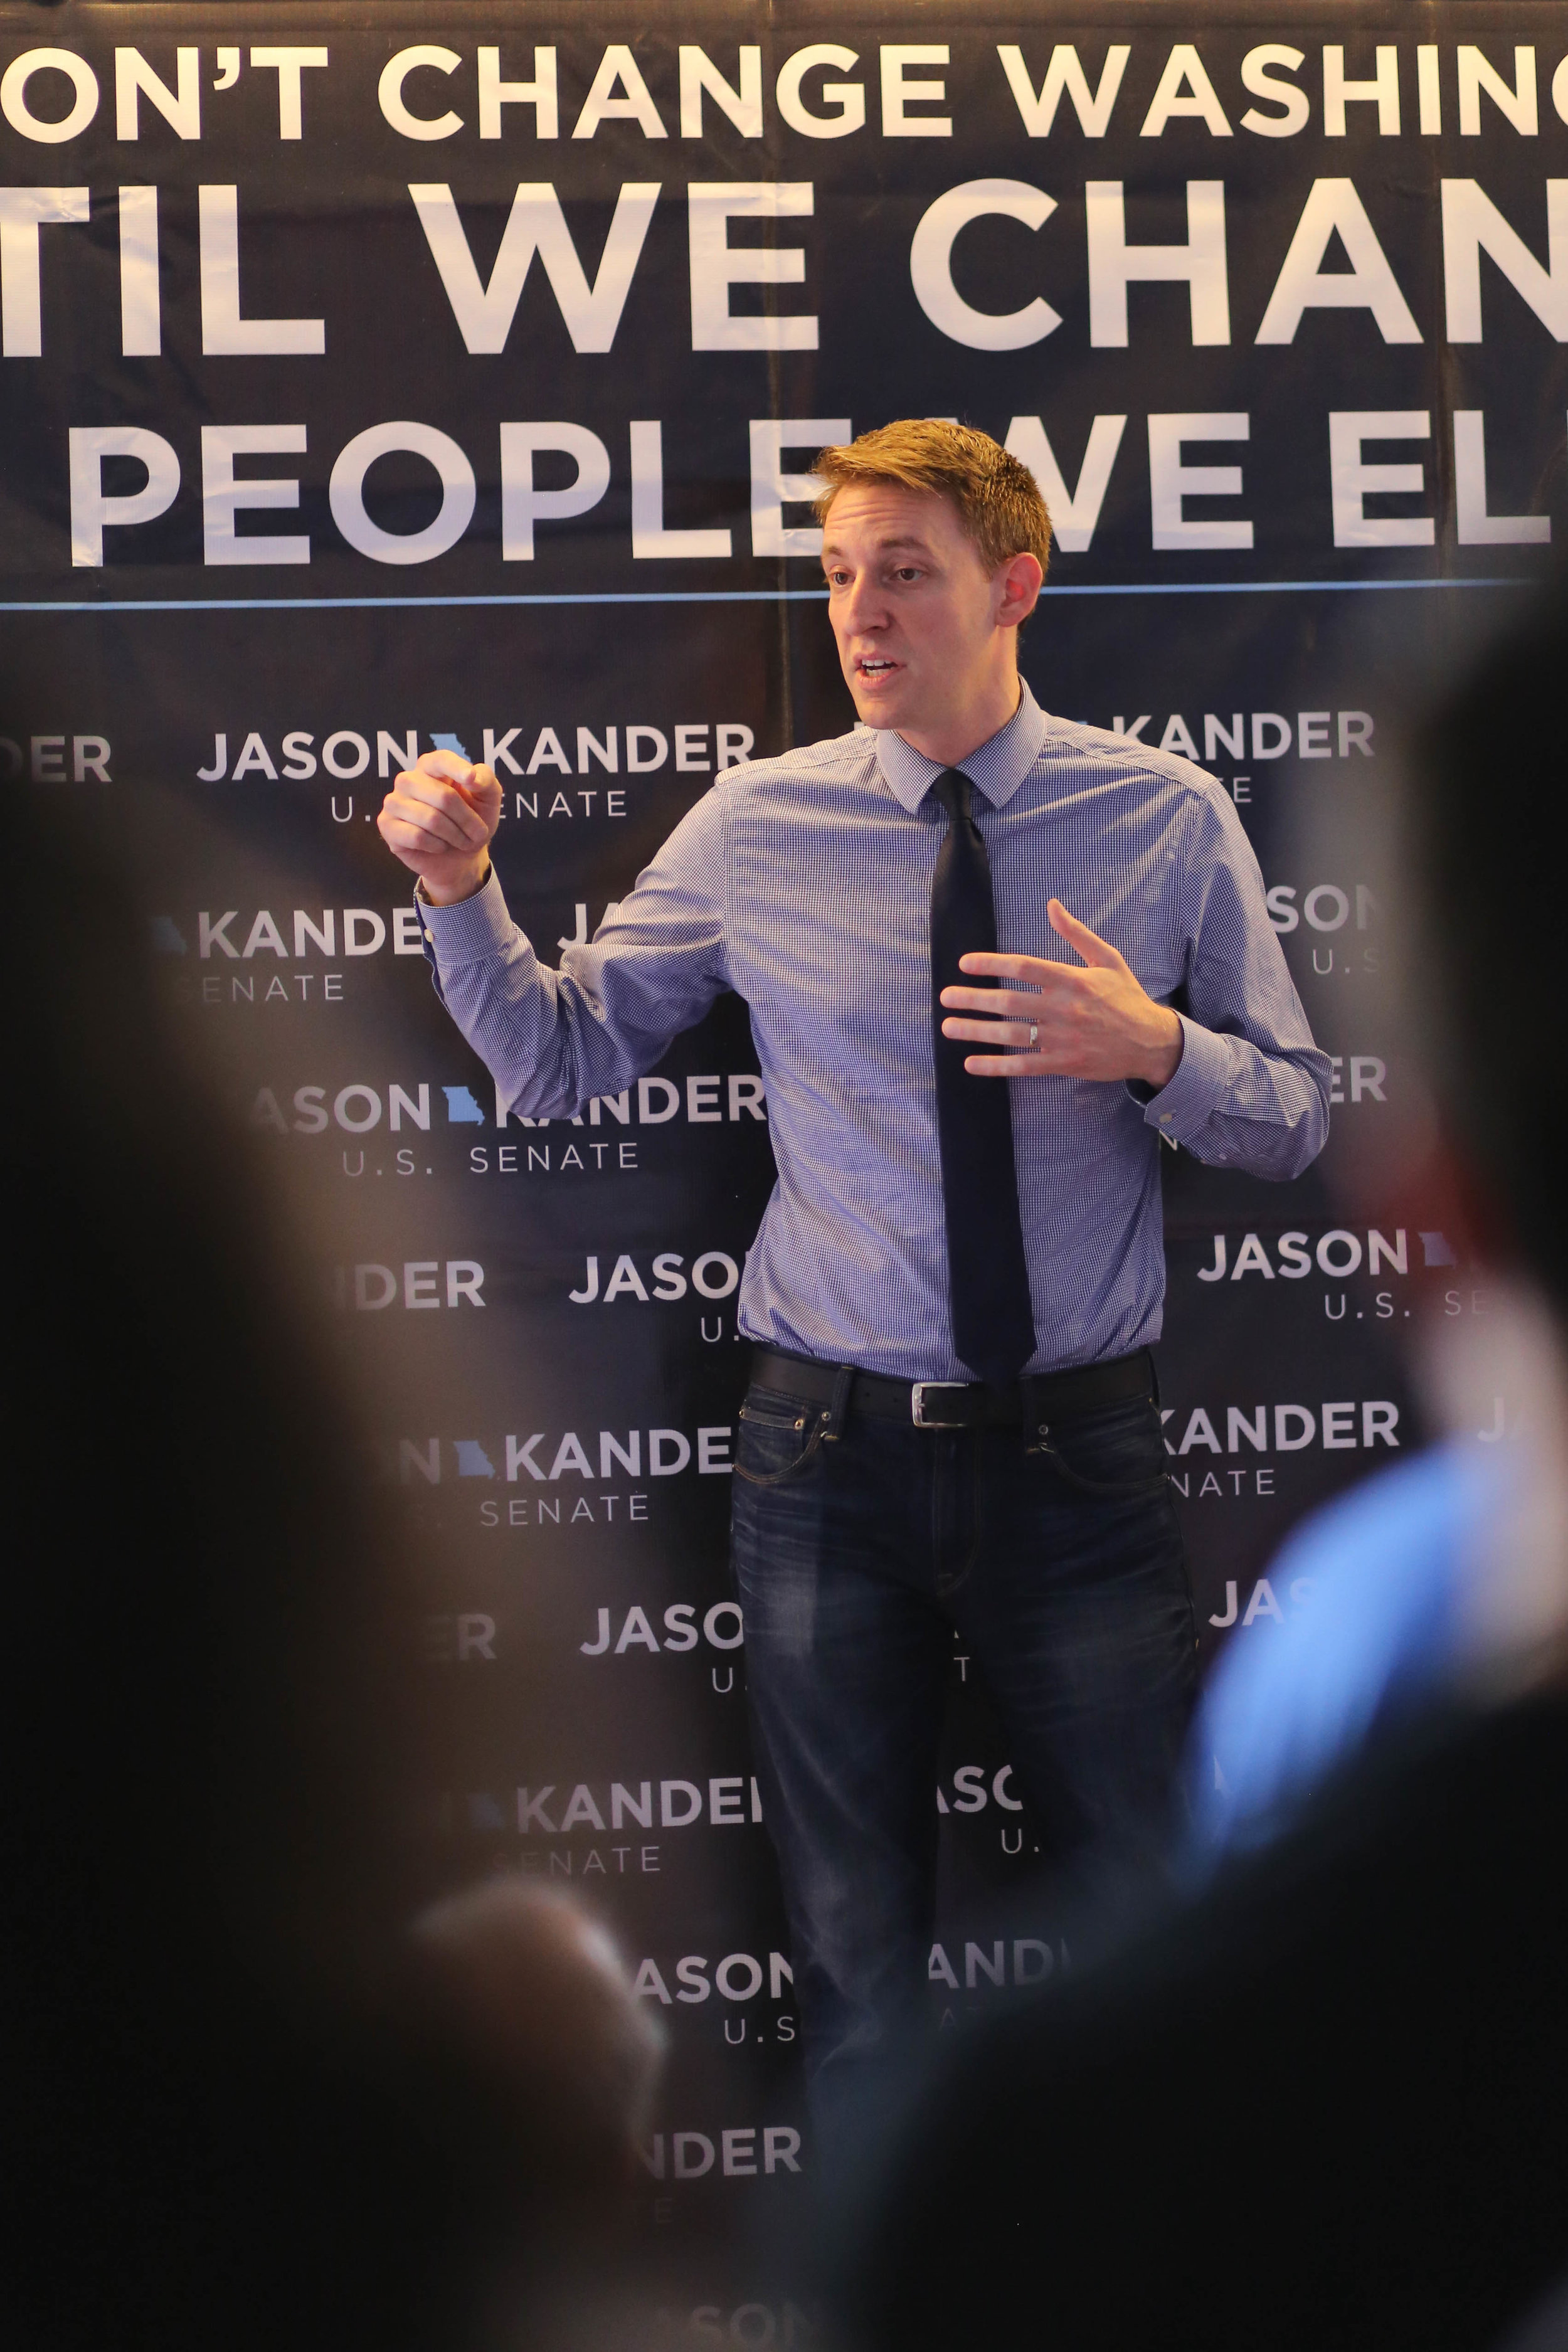 Kander campaigning in St. Louis in 2016 ( source )